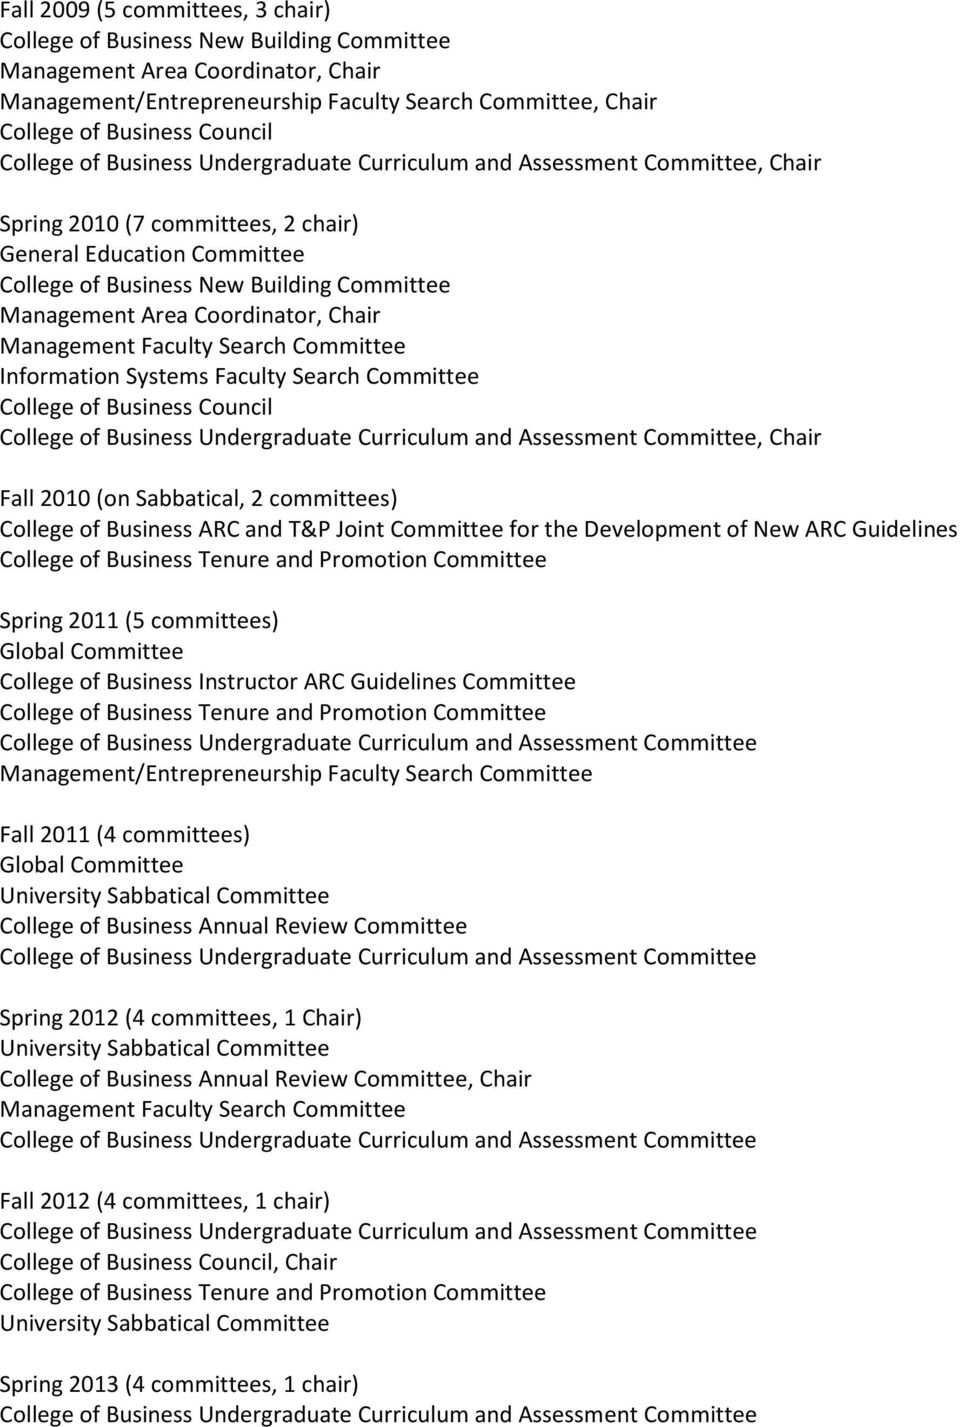 Business ARC and T&P Joint Committee for the Development of New ARC Guidelines Spring 2011 (5 committees) Global Committee College of Business Instructor ARC Guidelines Committee